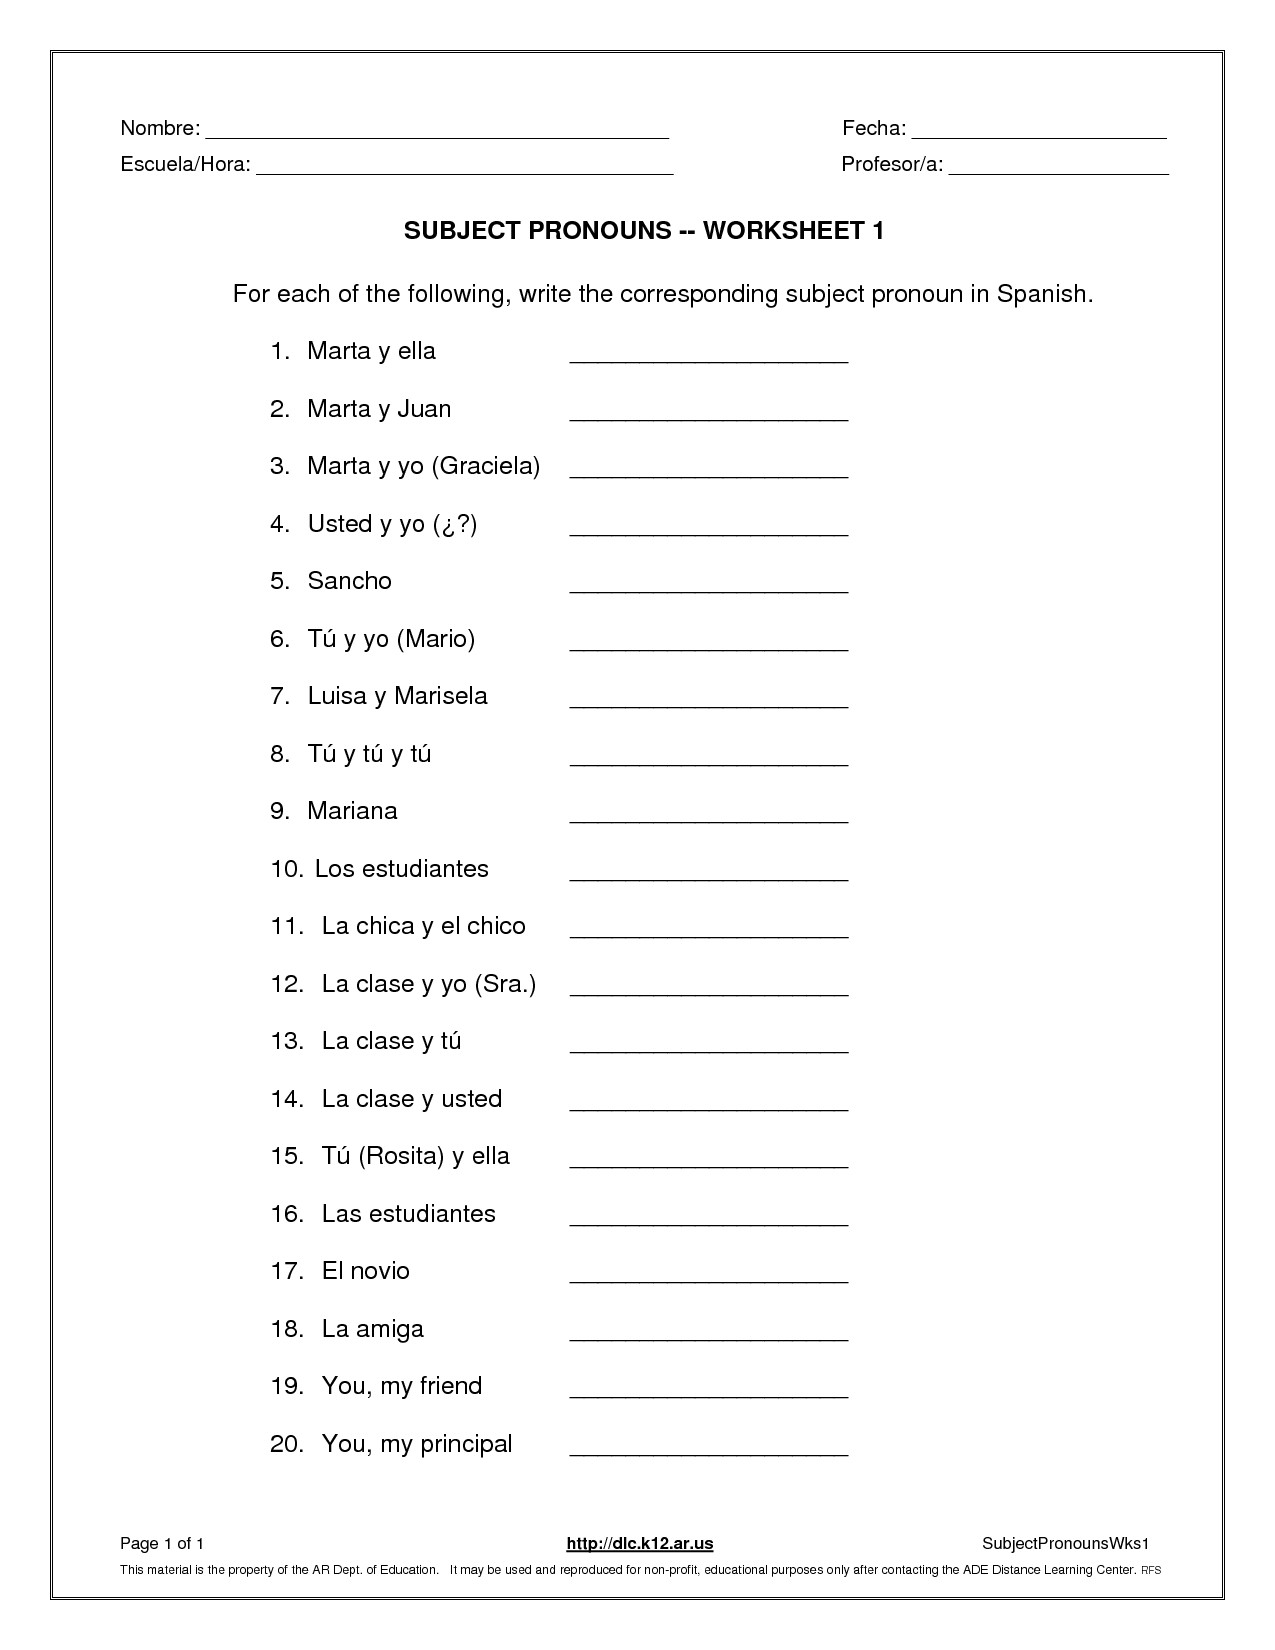 Uncategorized Spanish Subject Pronouns Worksheet la escuela de ingles eva subject pronouns worksheet cosas worksheet